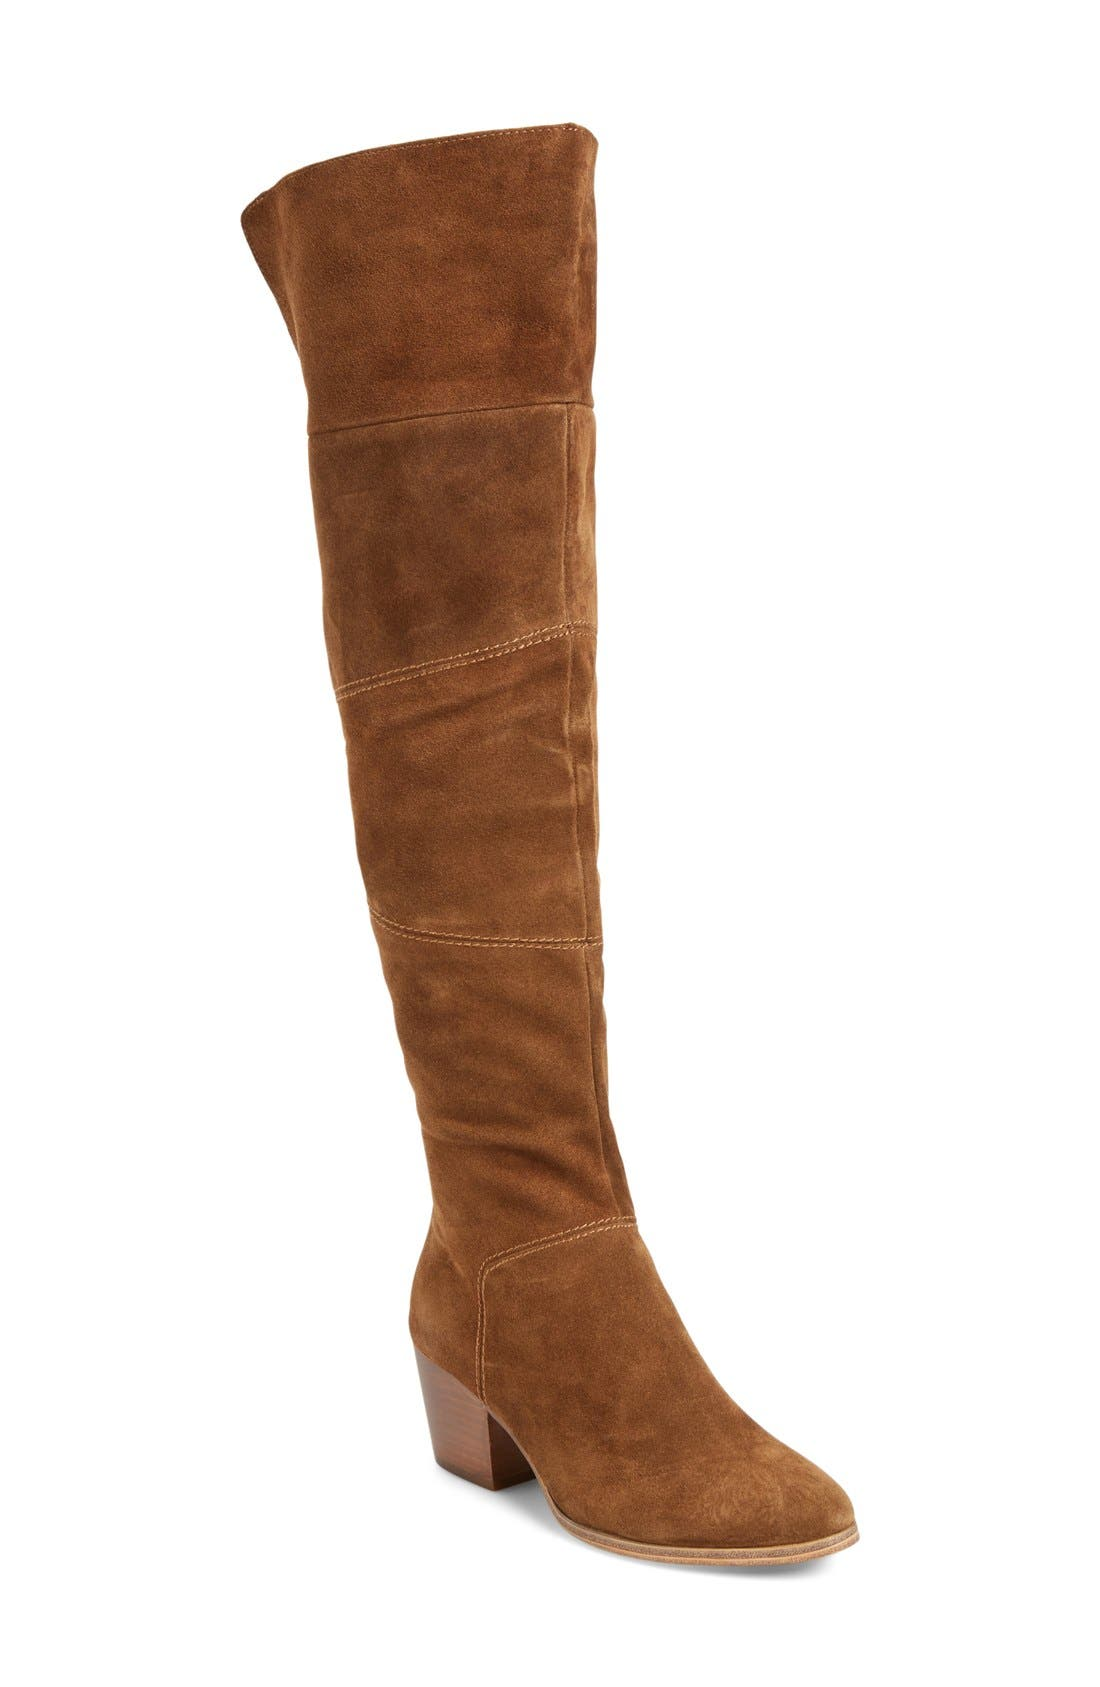 Melbourne Over the Knee Boot,                         Main,                         color, Brown Suede